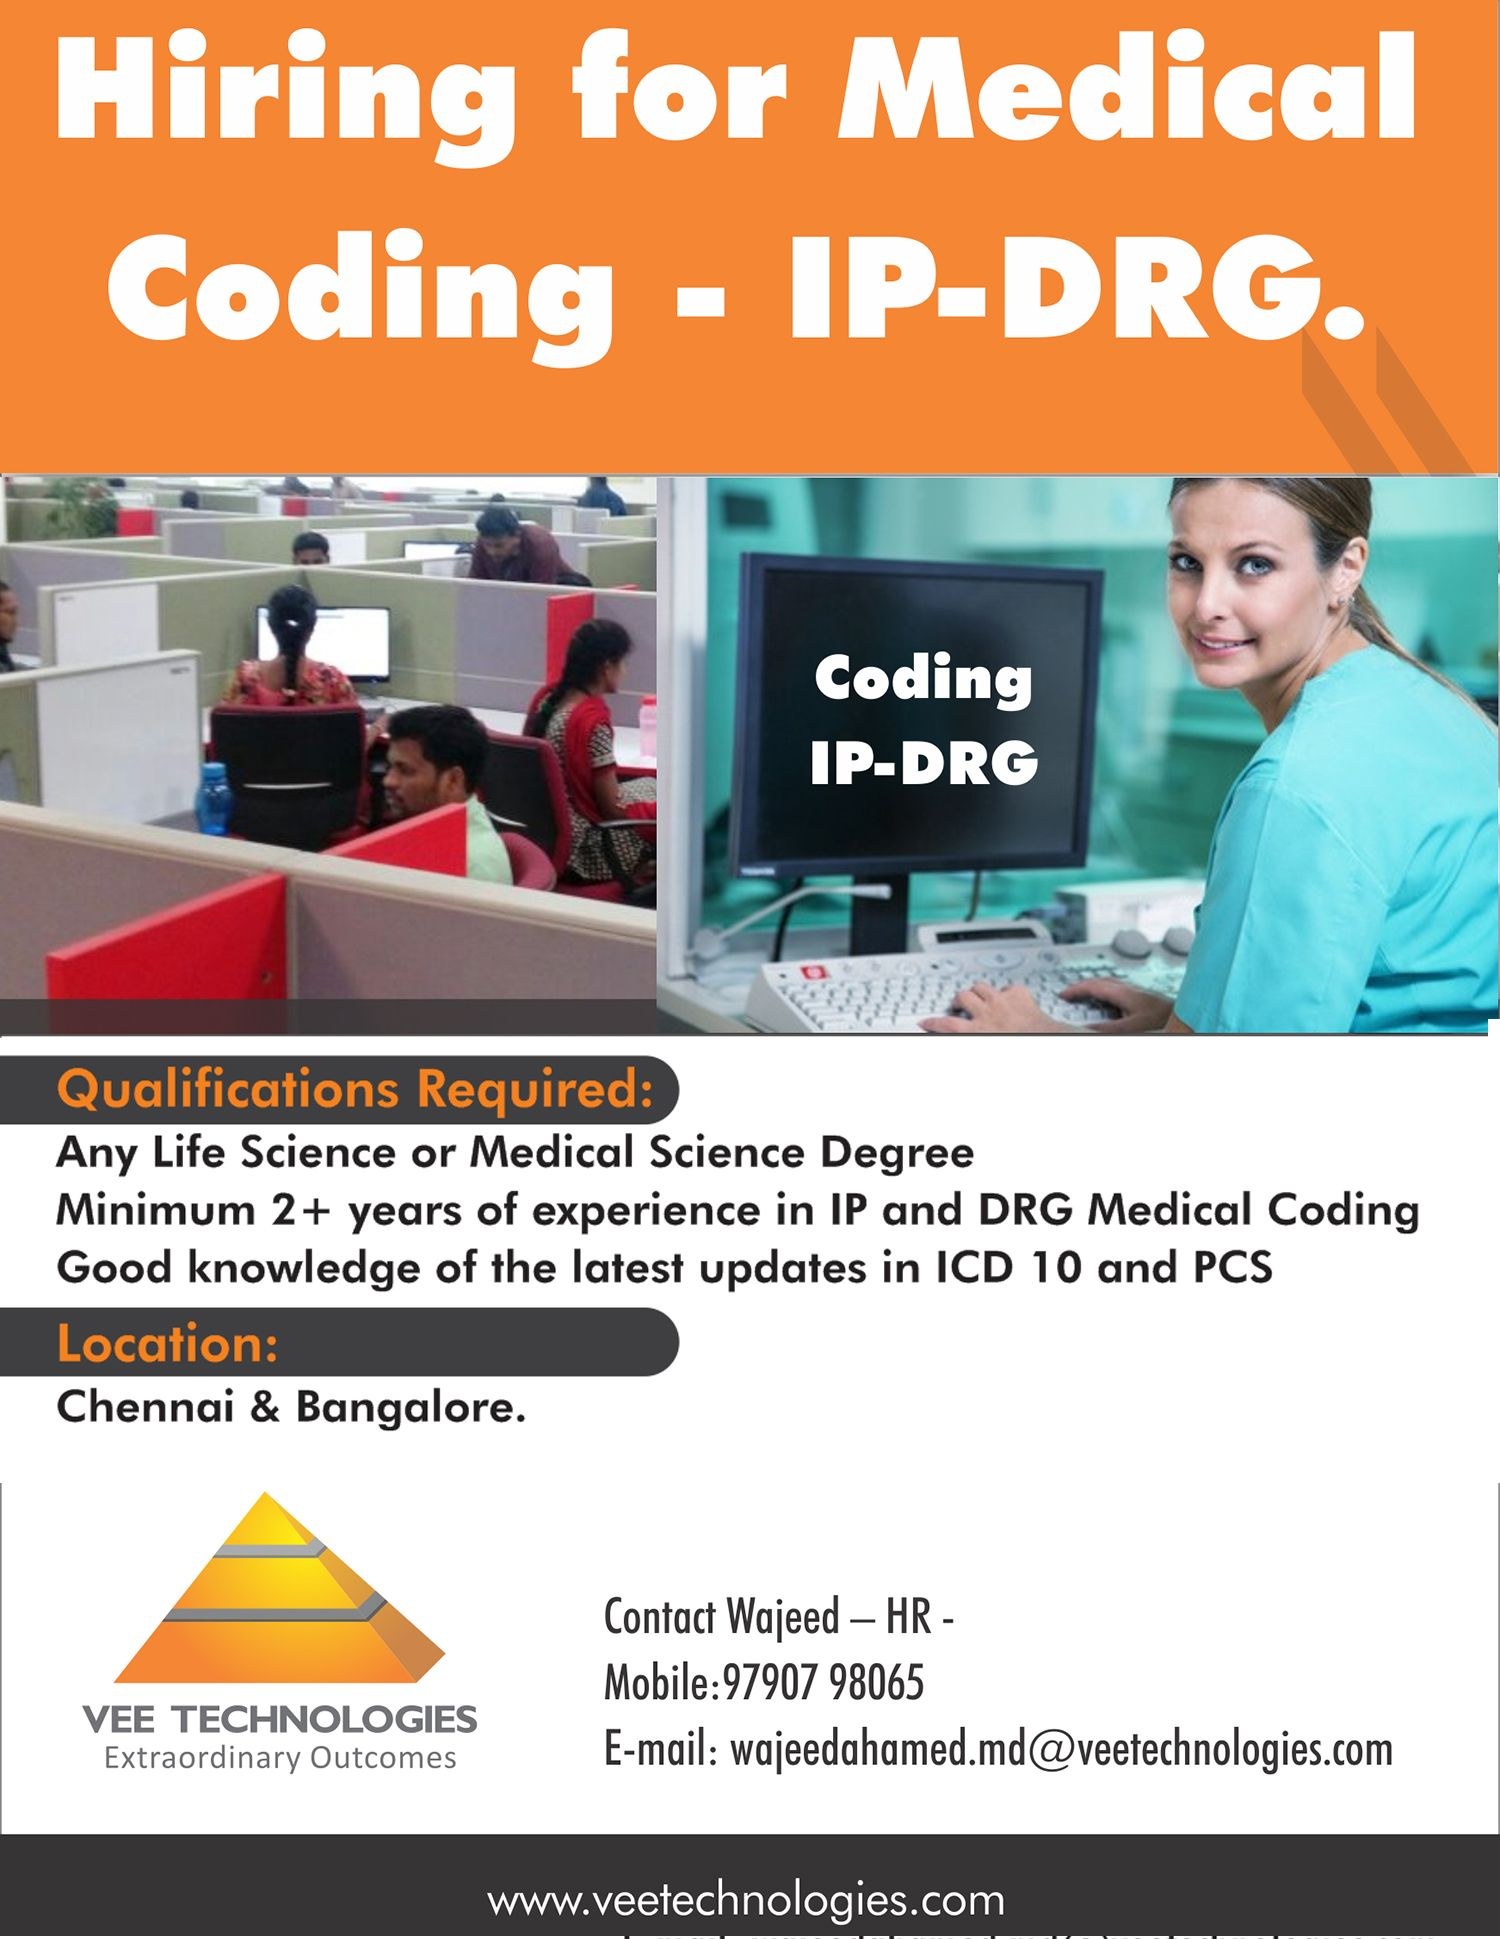 Job Opening At Vee Technologies For Medical Coders  Ip And Drg